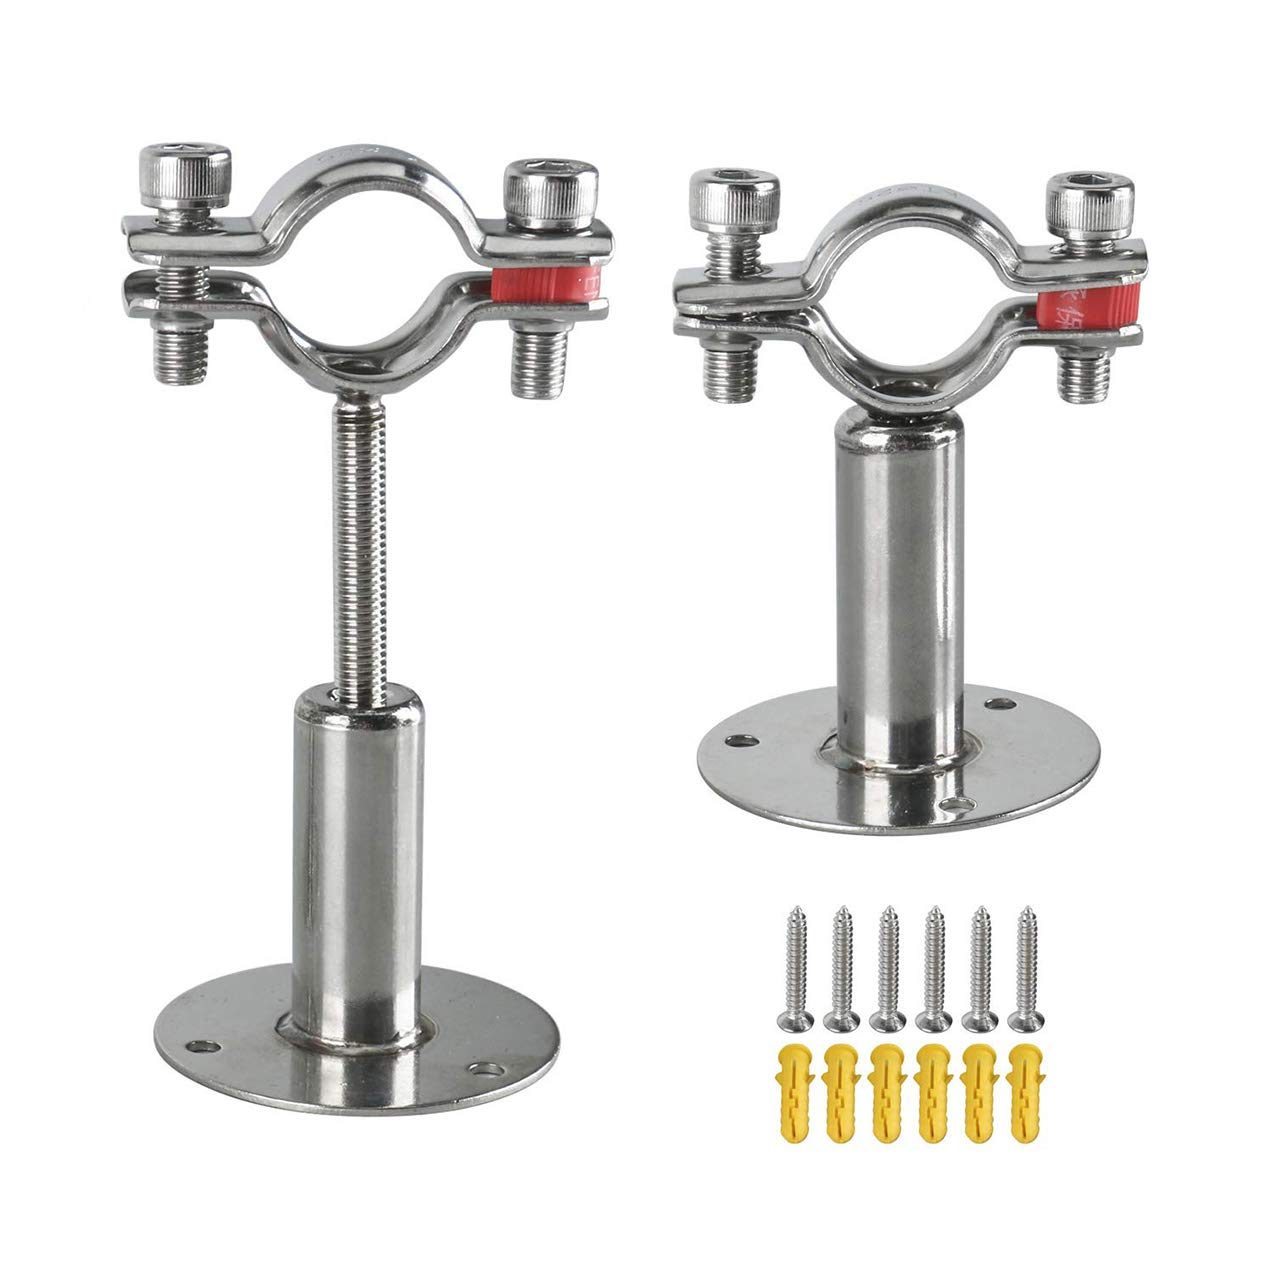 3//4 Inch Gaosheng 2 Pcs Stainless Steel Ceiling Wall Mount Adjustable Pipe Bracket Pipe Clamps for /Ø 25mm-27mm